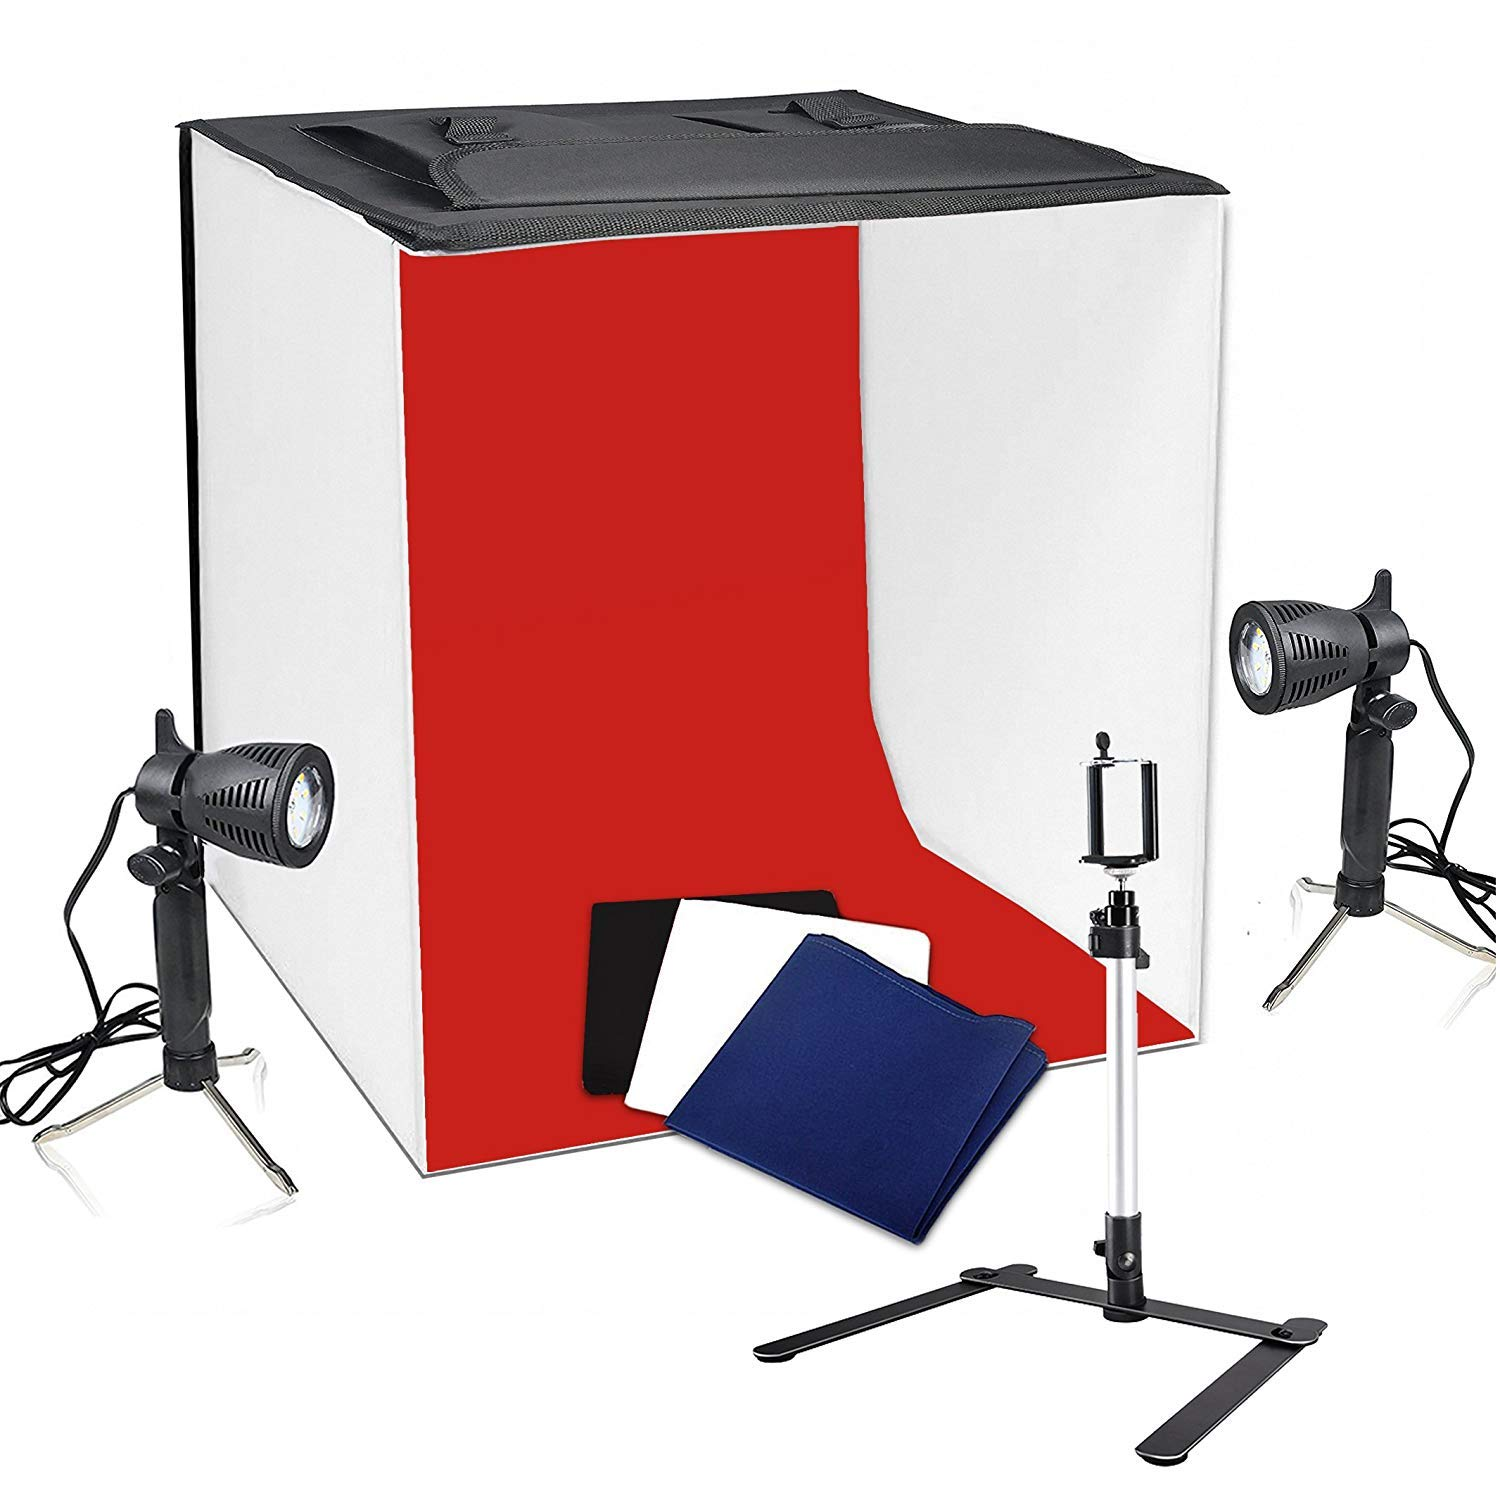 Photography 24''x24'' Table Top Photo Photography Light Shooting Tent Kit Studio Light Box with Double LED Head Light Set, Camera Tripod Stand and 4 Color Backdrops by PHOTO MASTER